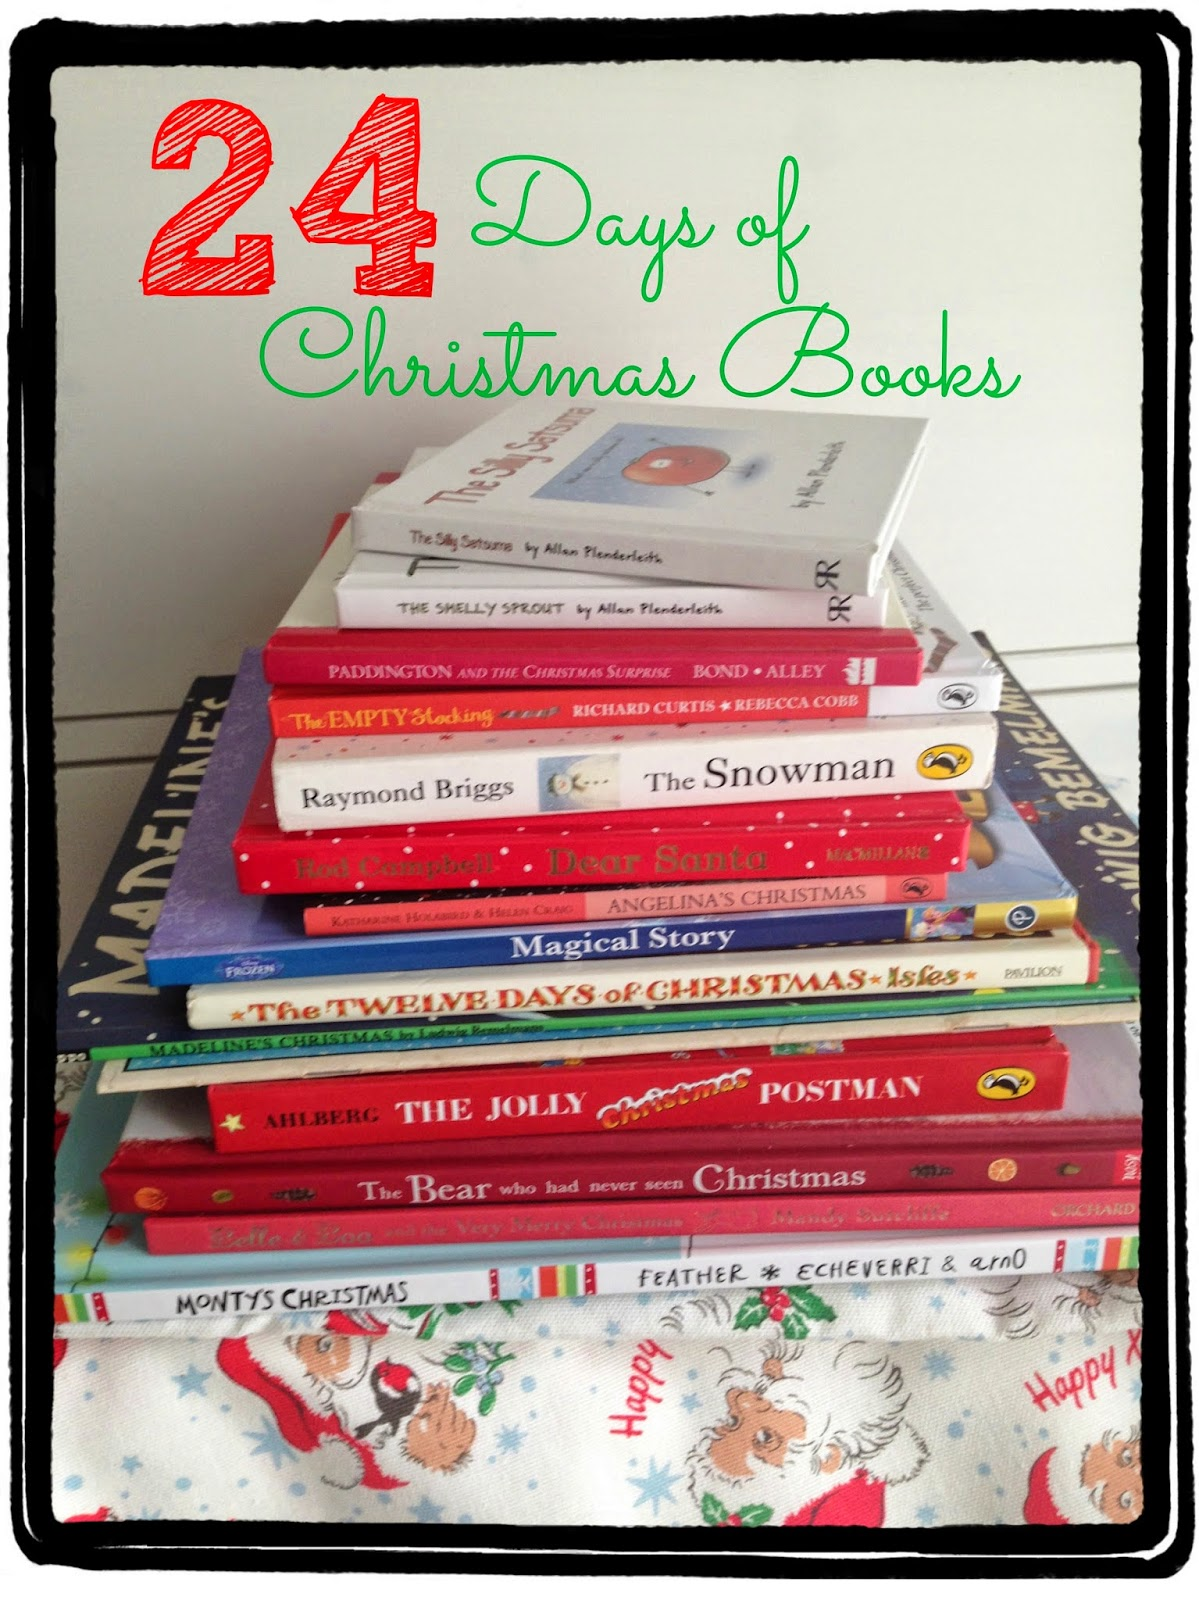 our new family christmas traditions part 2 24 days of christmas tales